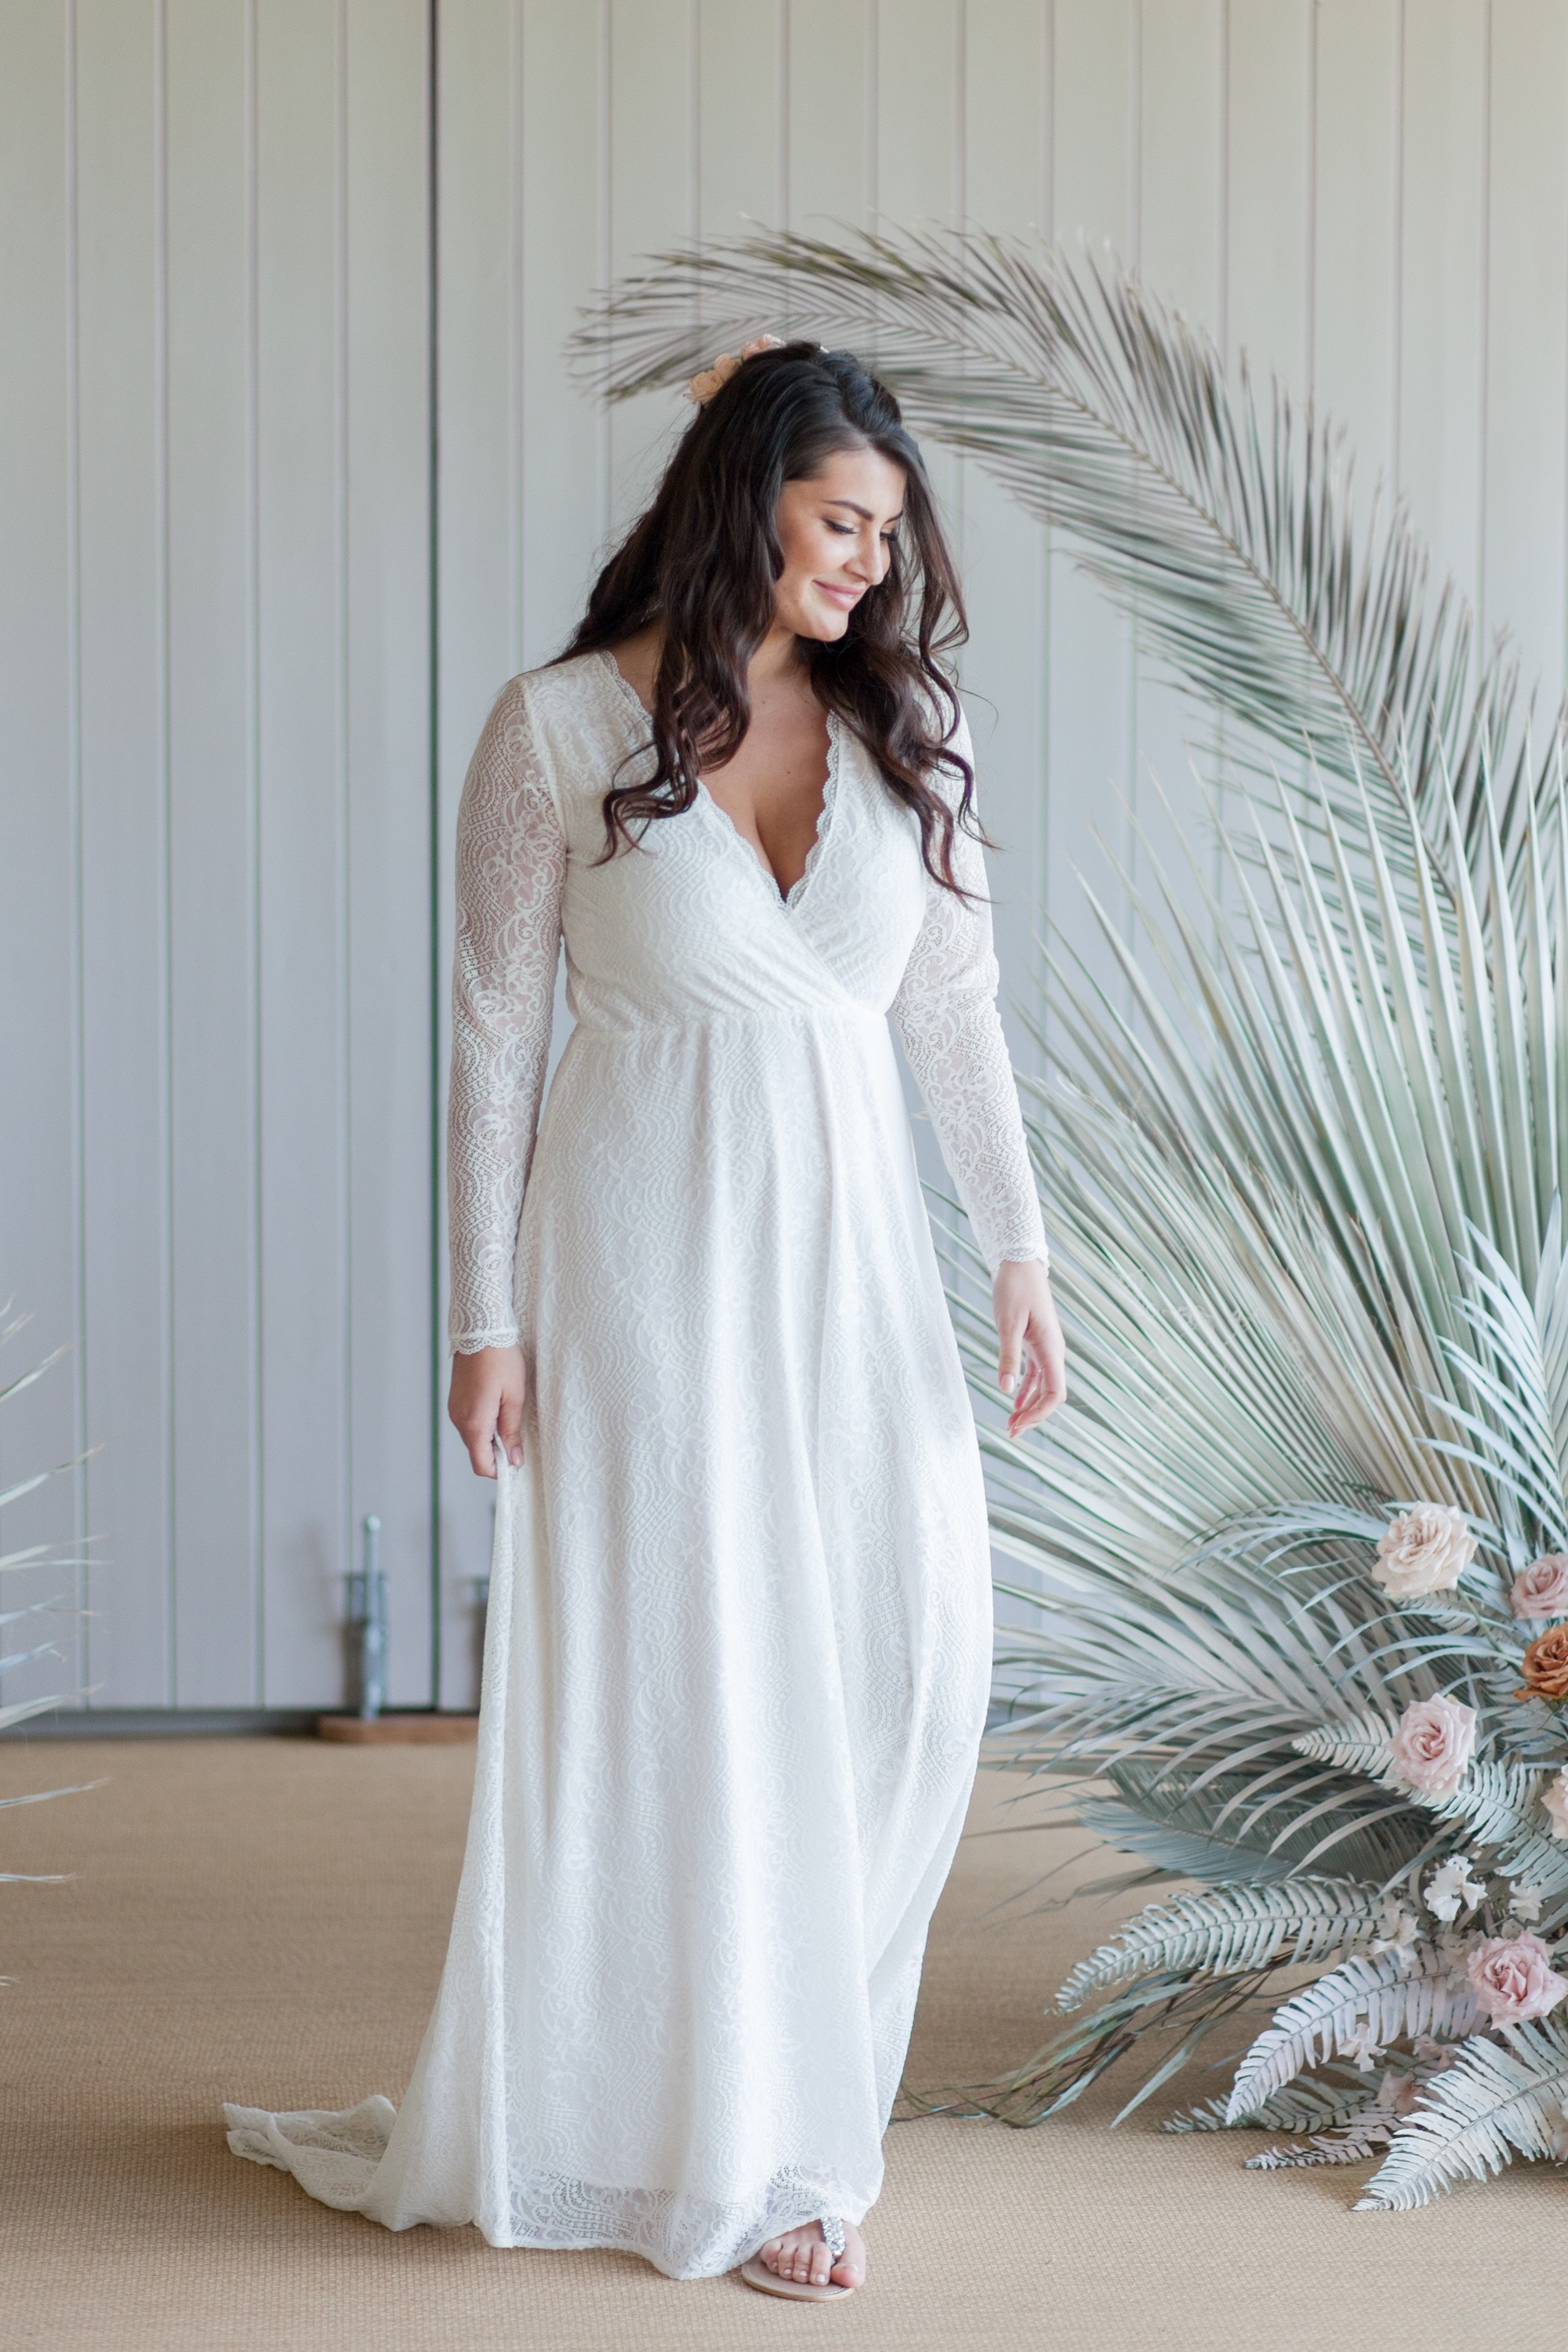 Modern, easy to wear wedding gown from Luella's Bridal